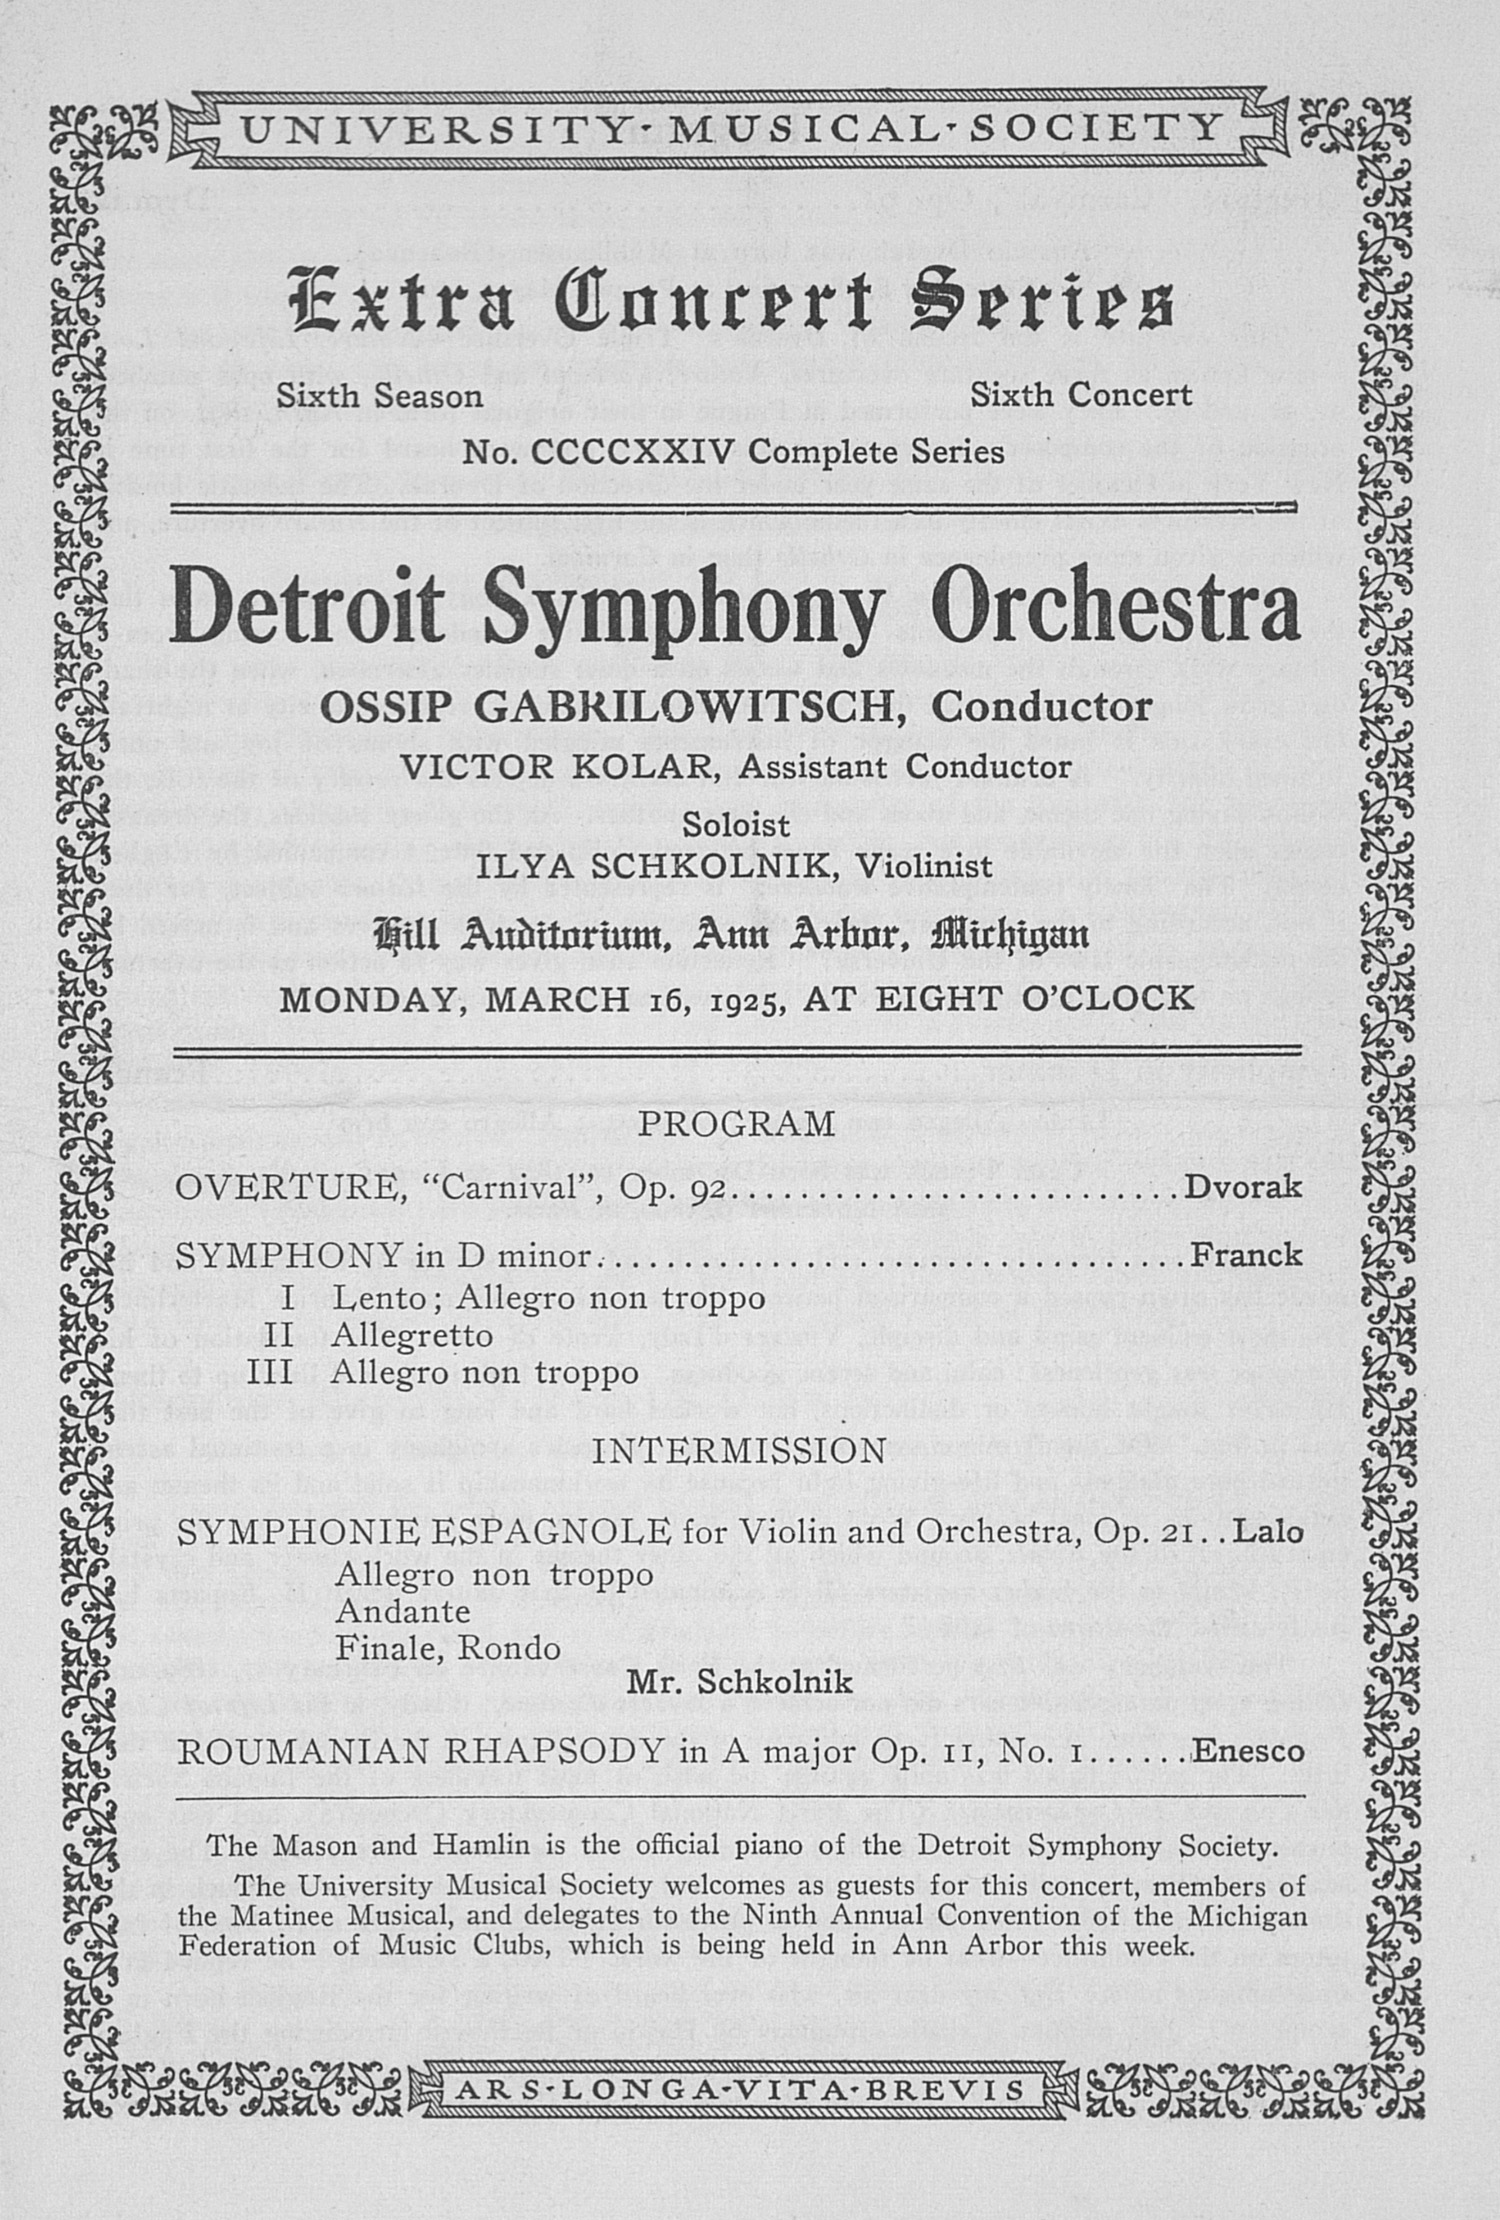 UMS Concert Program, March 16, 1925: Extra Concert Series -- Detroit Symphony Orchestra image